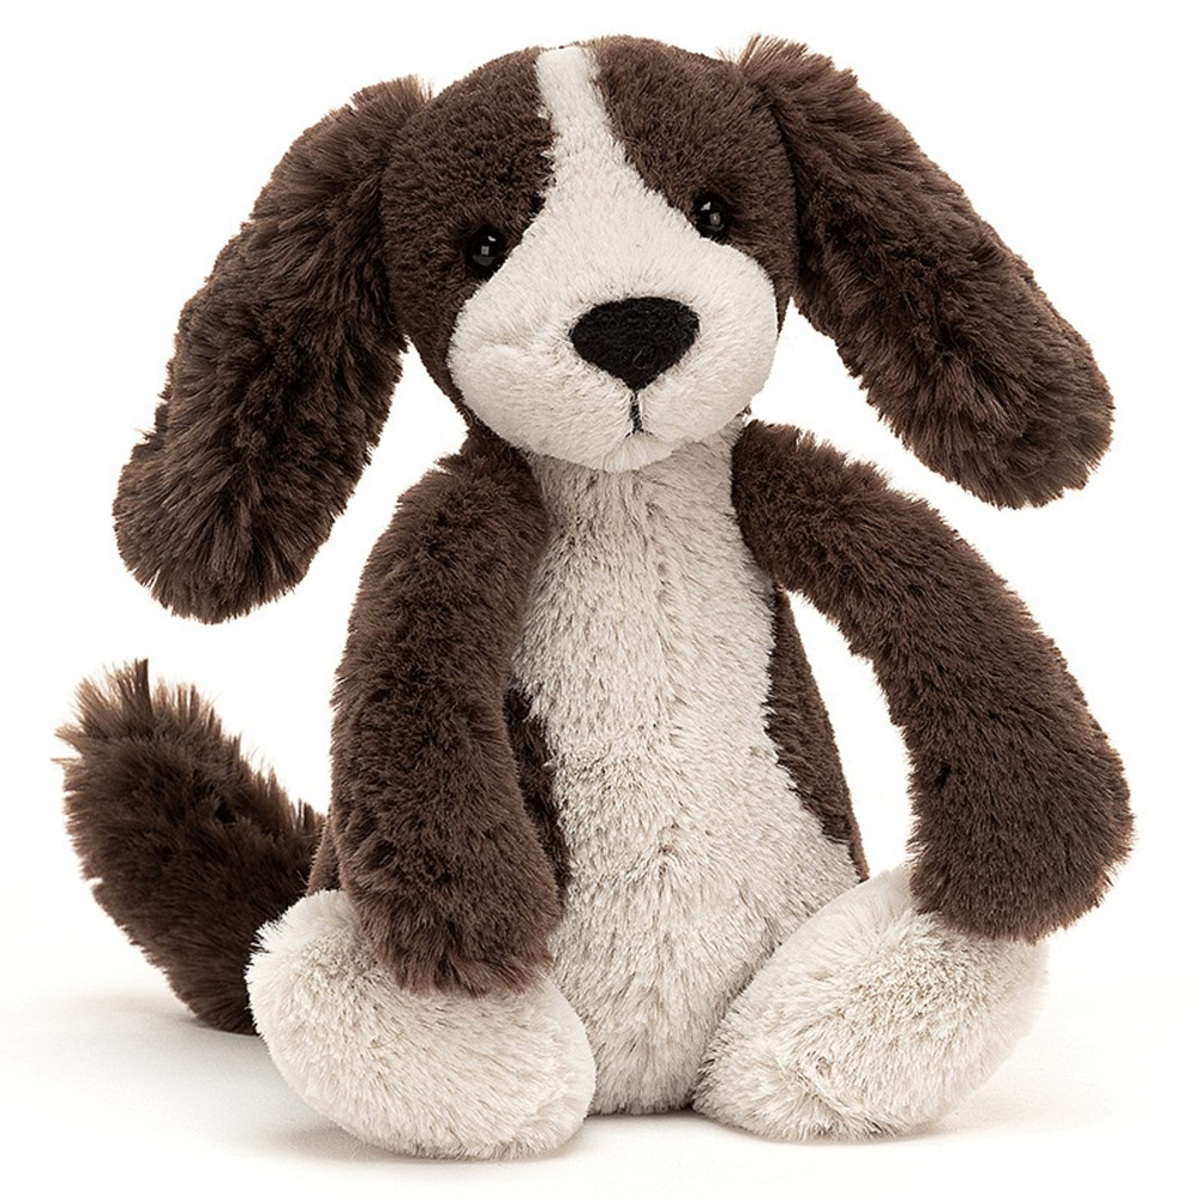 Peluche Bashful Fudge Puppy - Small Peluche Chiot 18 cm